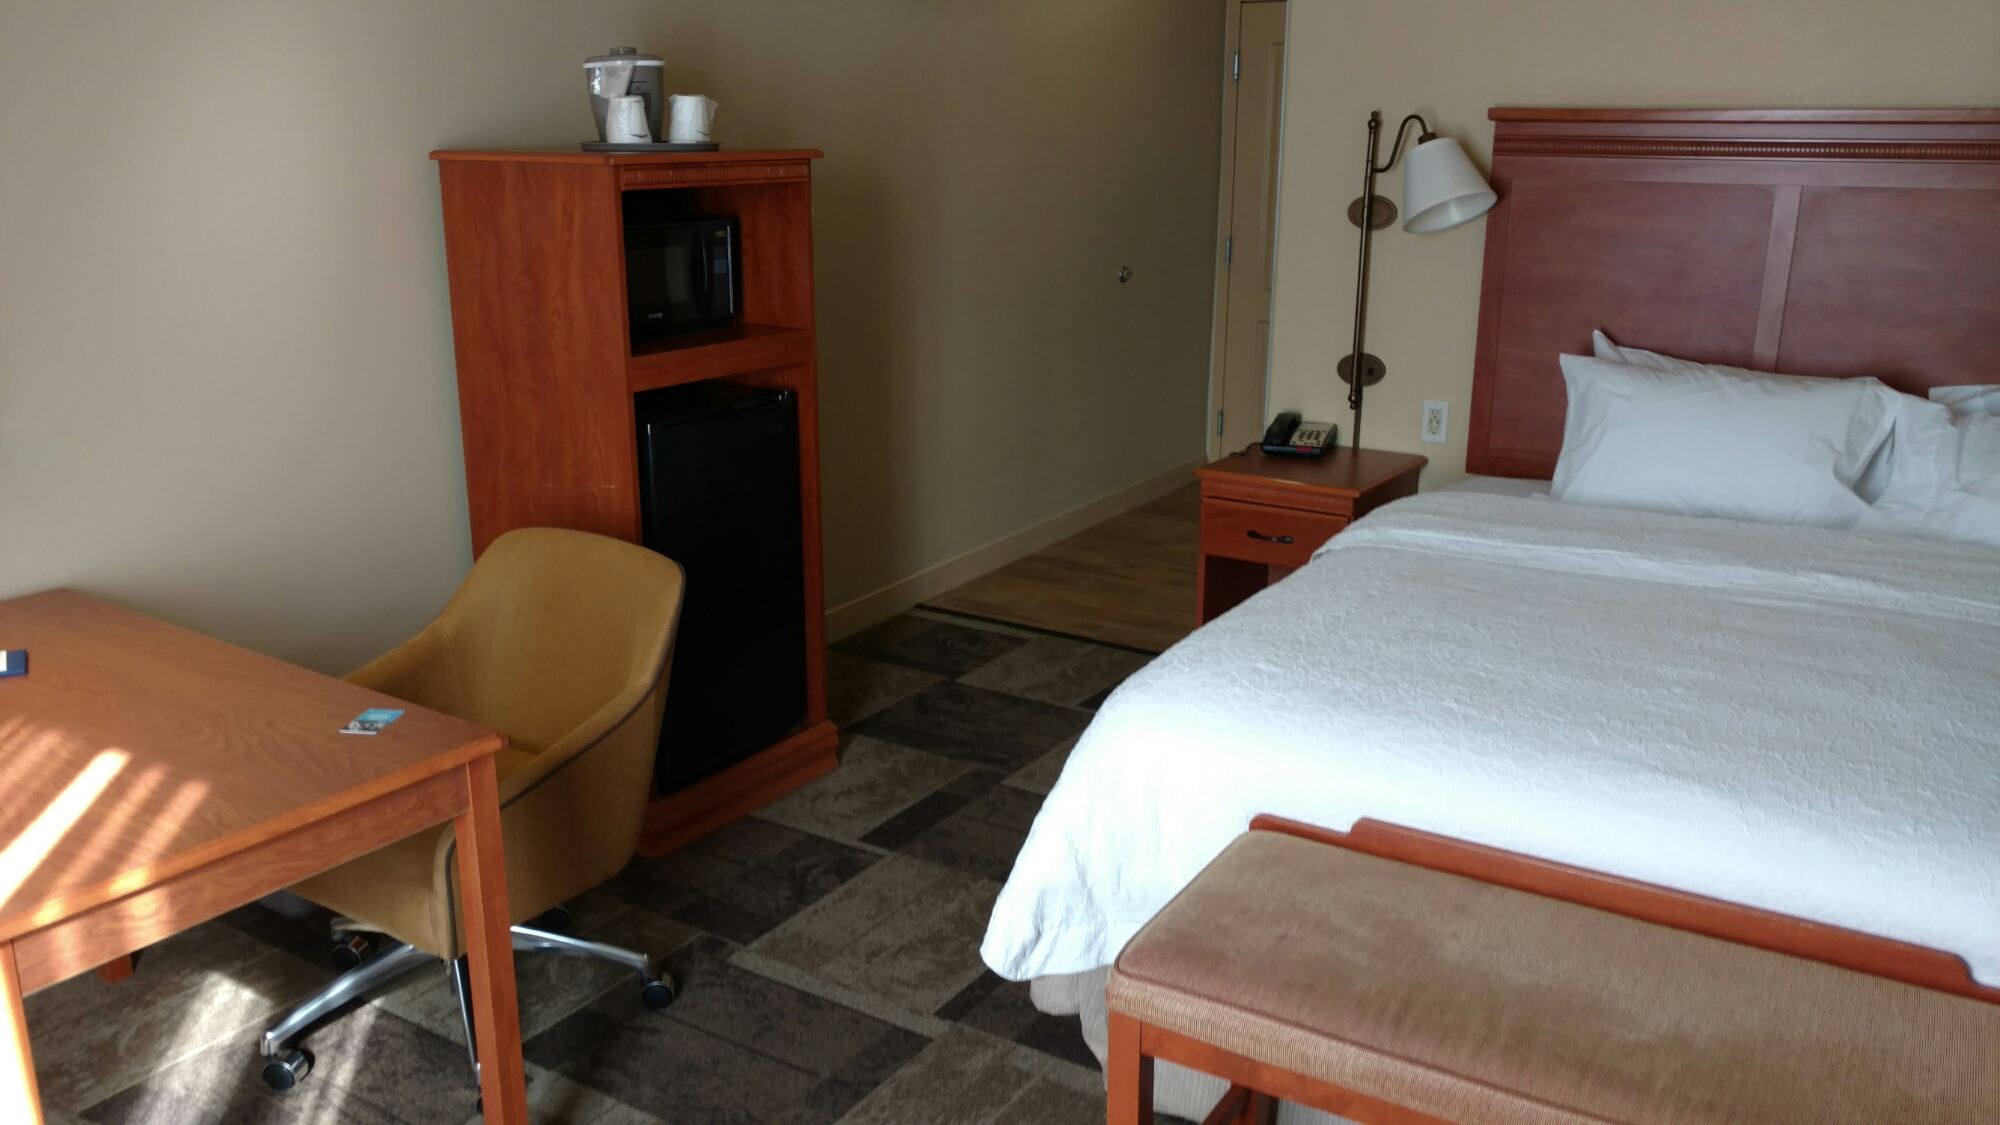 Uncategorized hilton fashion district review - This Is Sad As This Stay Is One Of A Few I Am Testing With Hilton Properties This Year To See If It S Worth Keeping Any Loyalty With This Chain